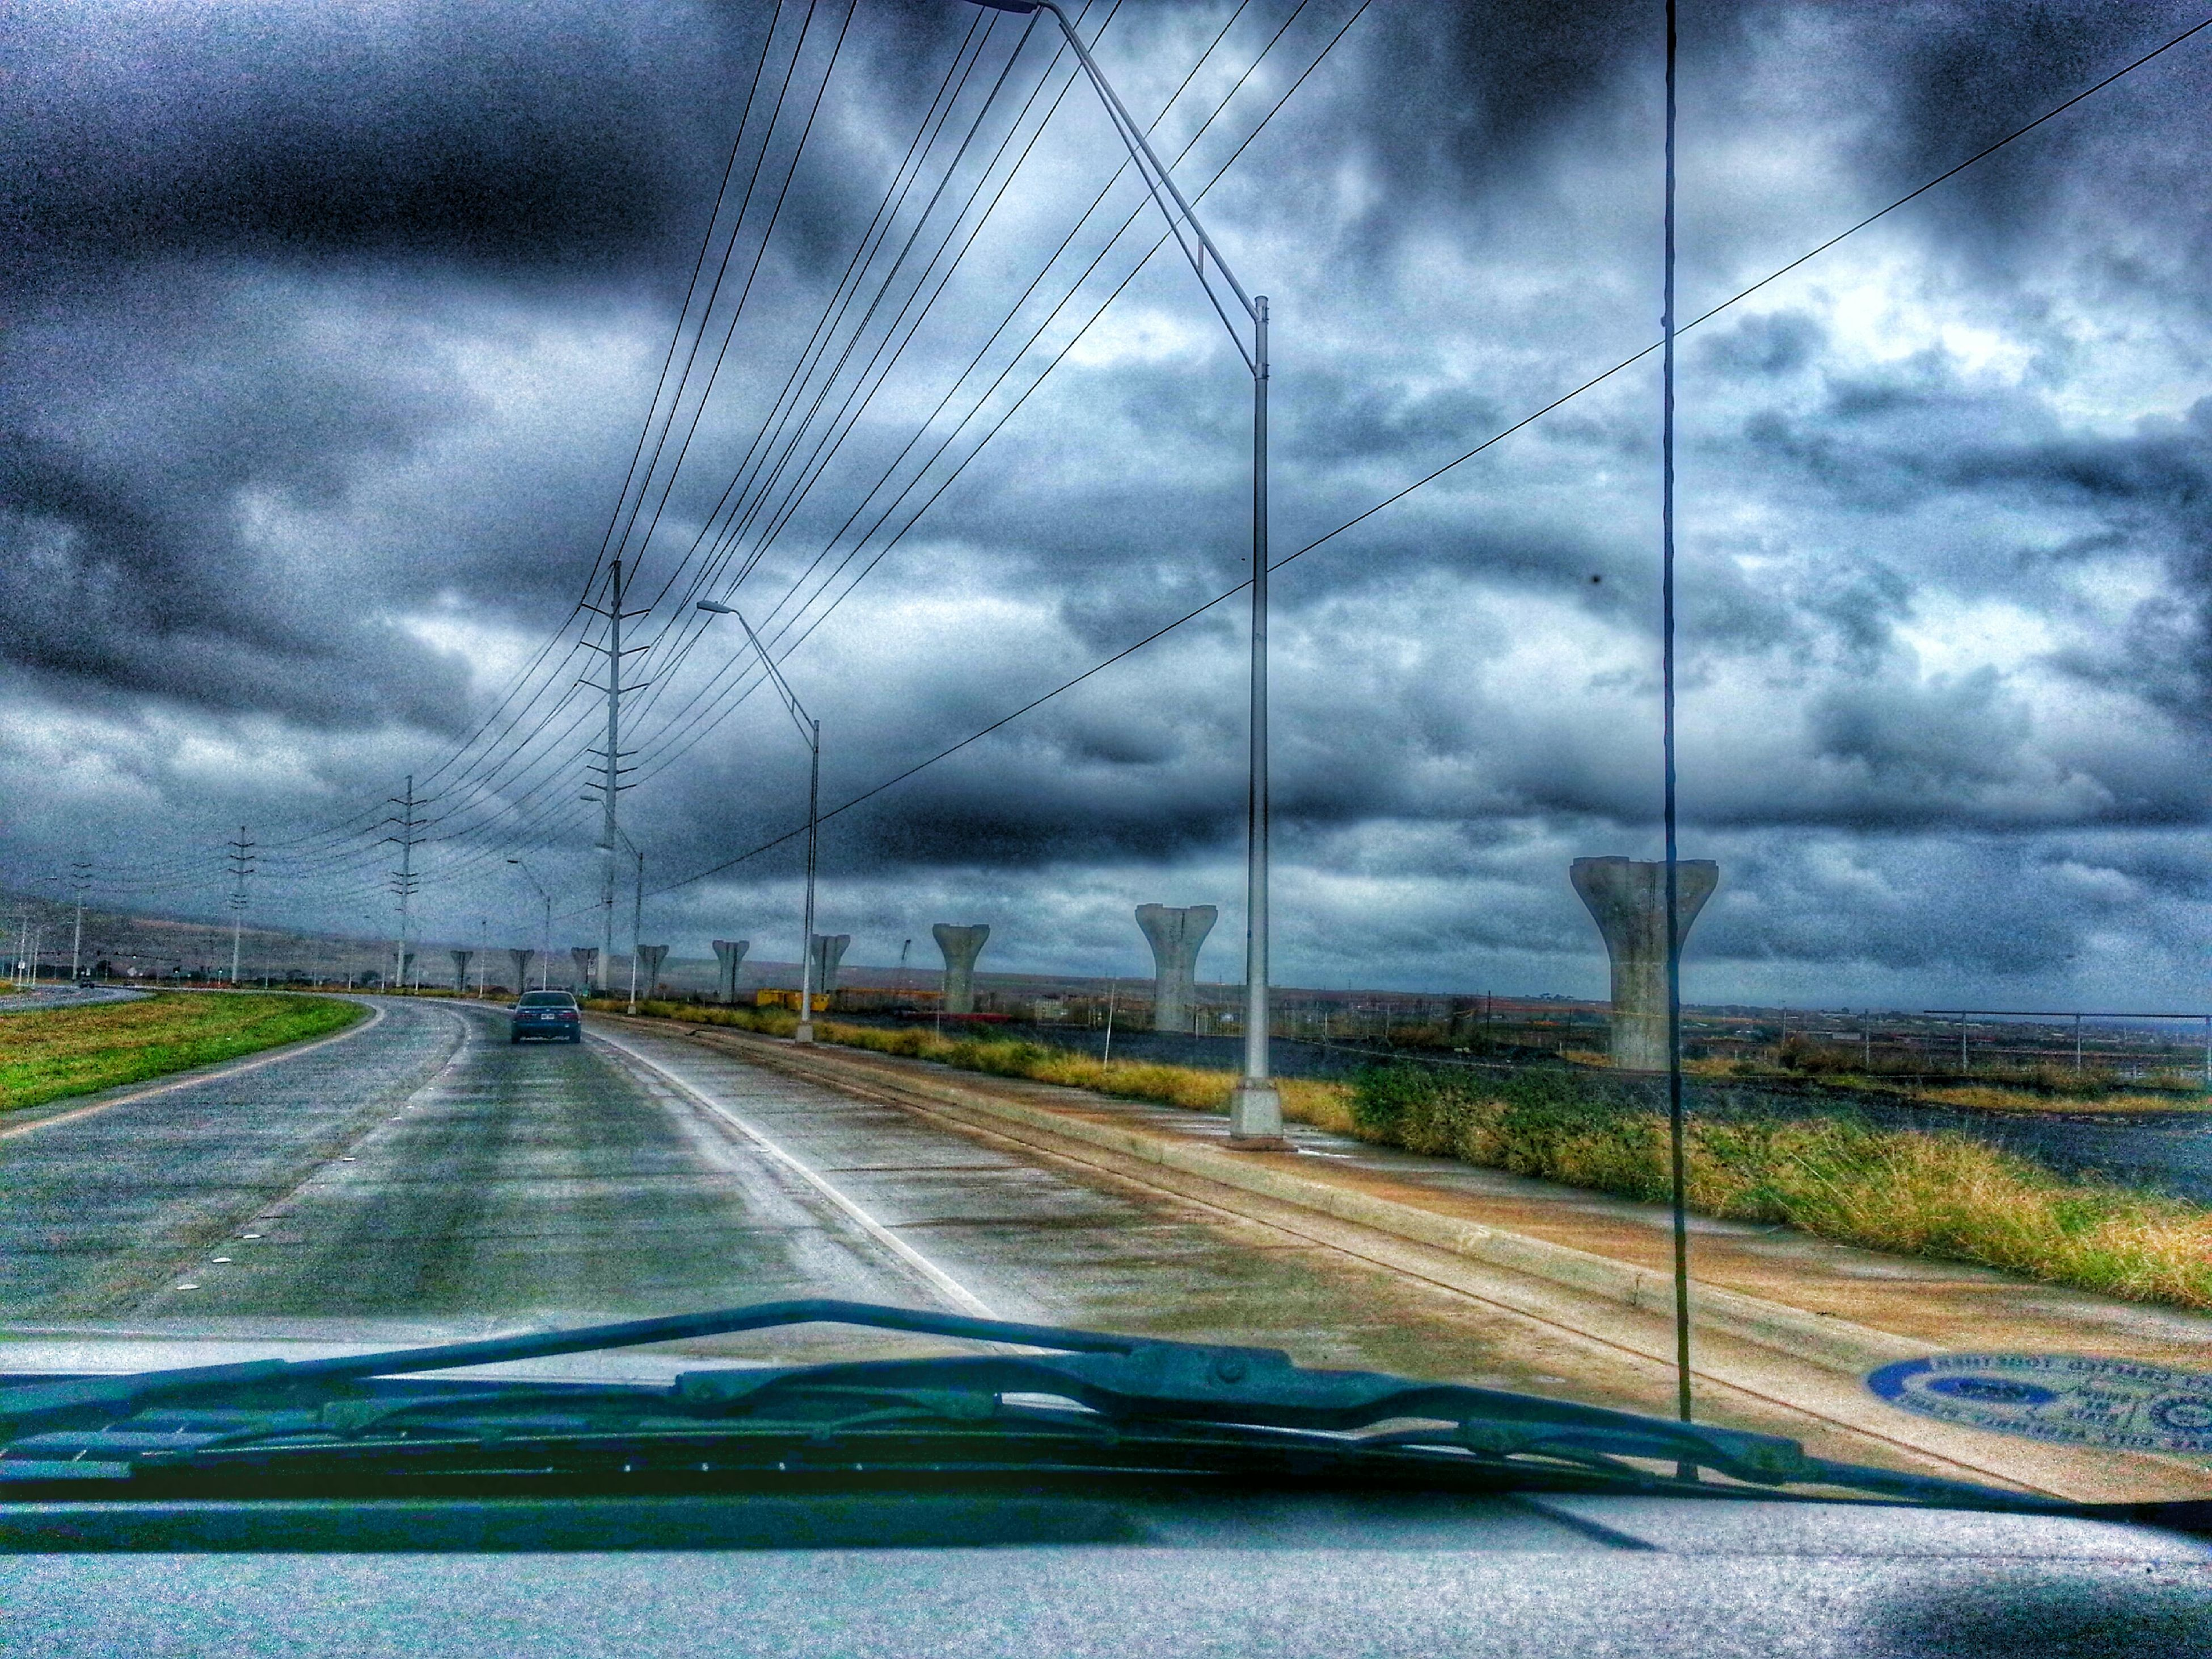 transportation, sky, cloud - sky, cloudy, road, the way forward, cloud, road marking, weather, storm cloud, car, mode of transport, diminishing perspective, overcast, country road, landscape, dramatic sky, vanishing point, windshield, land vehicle